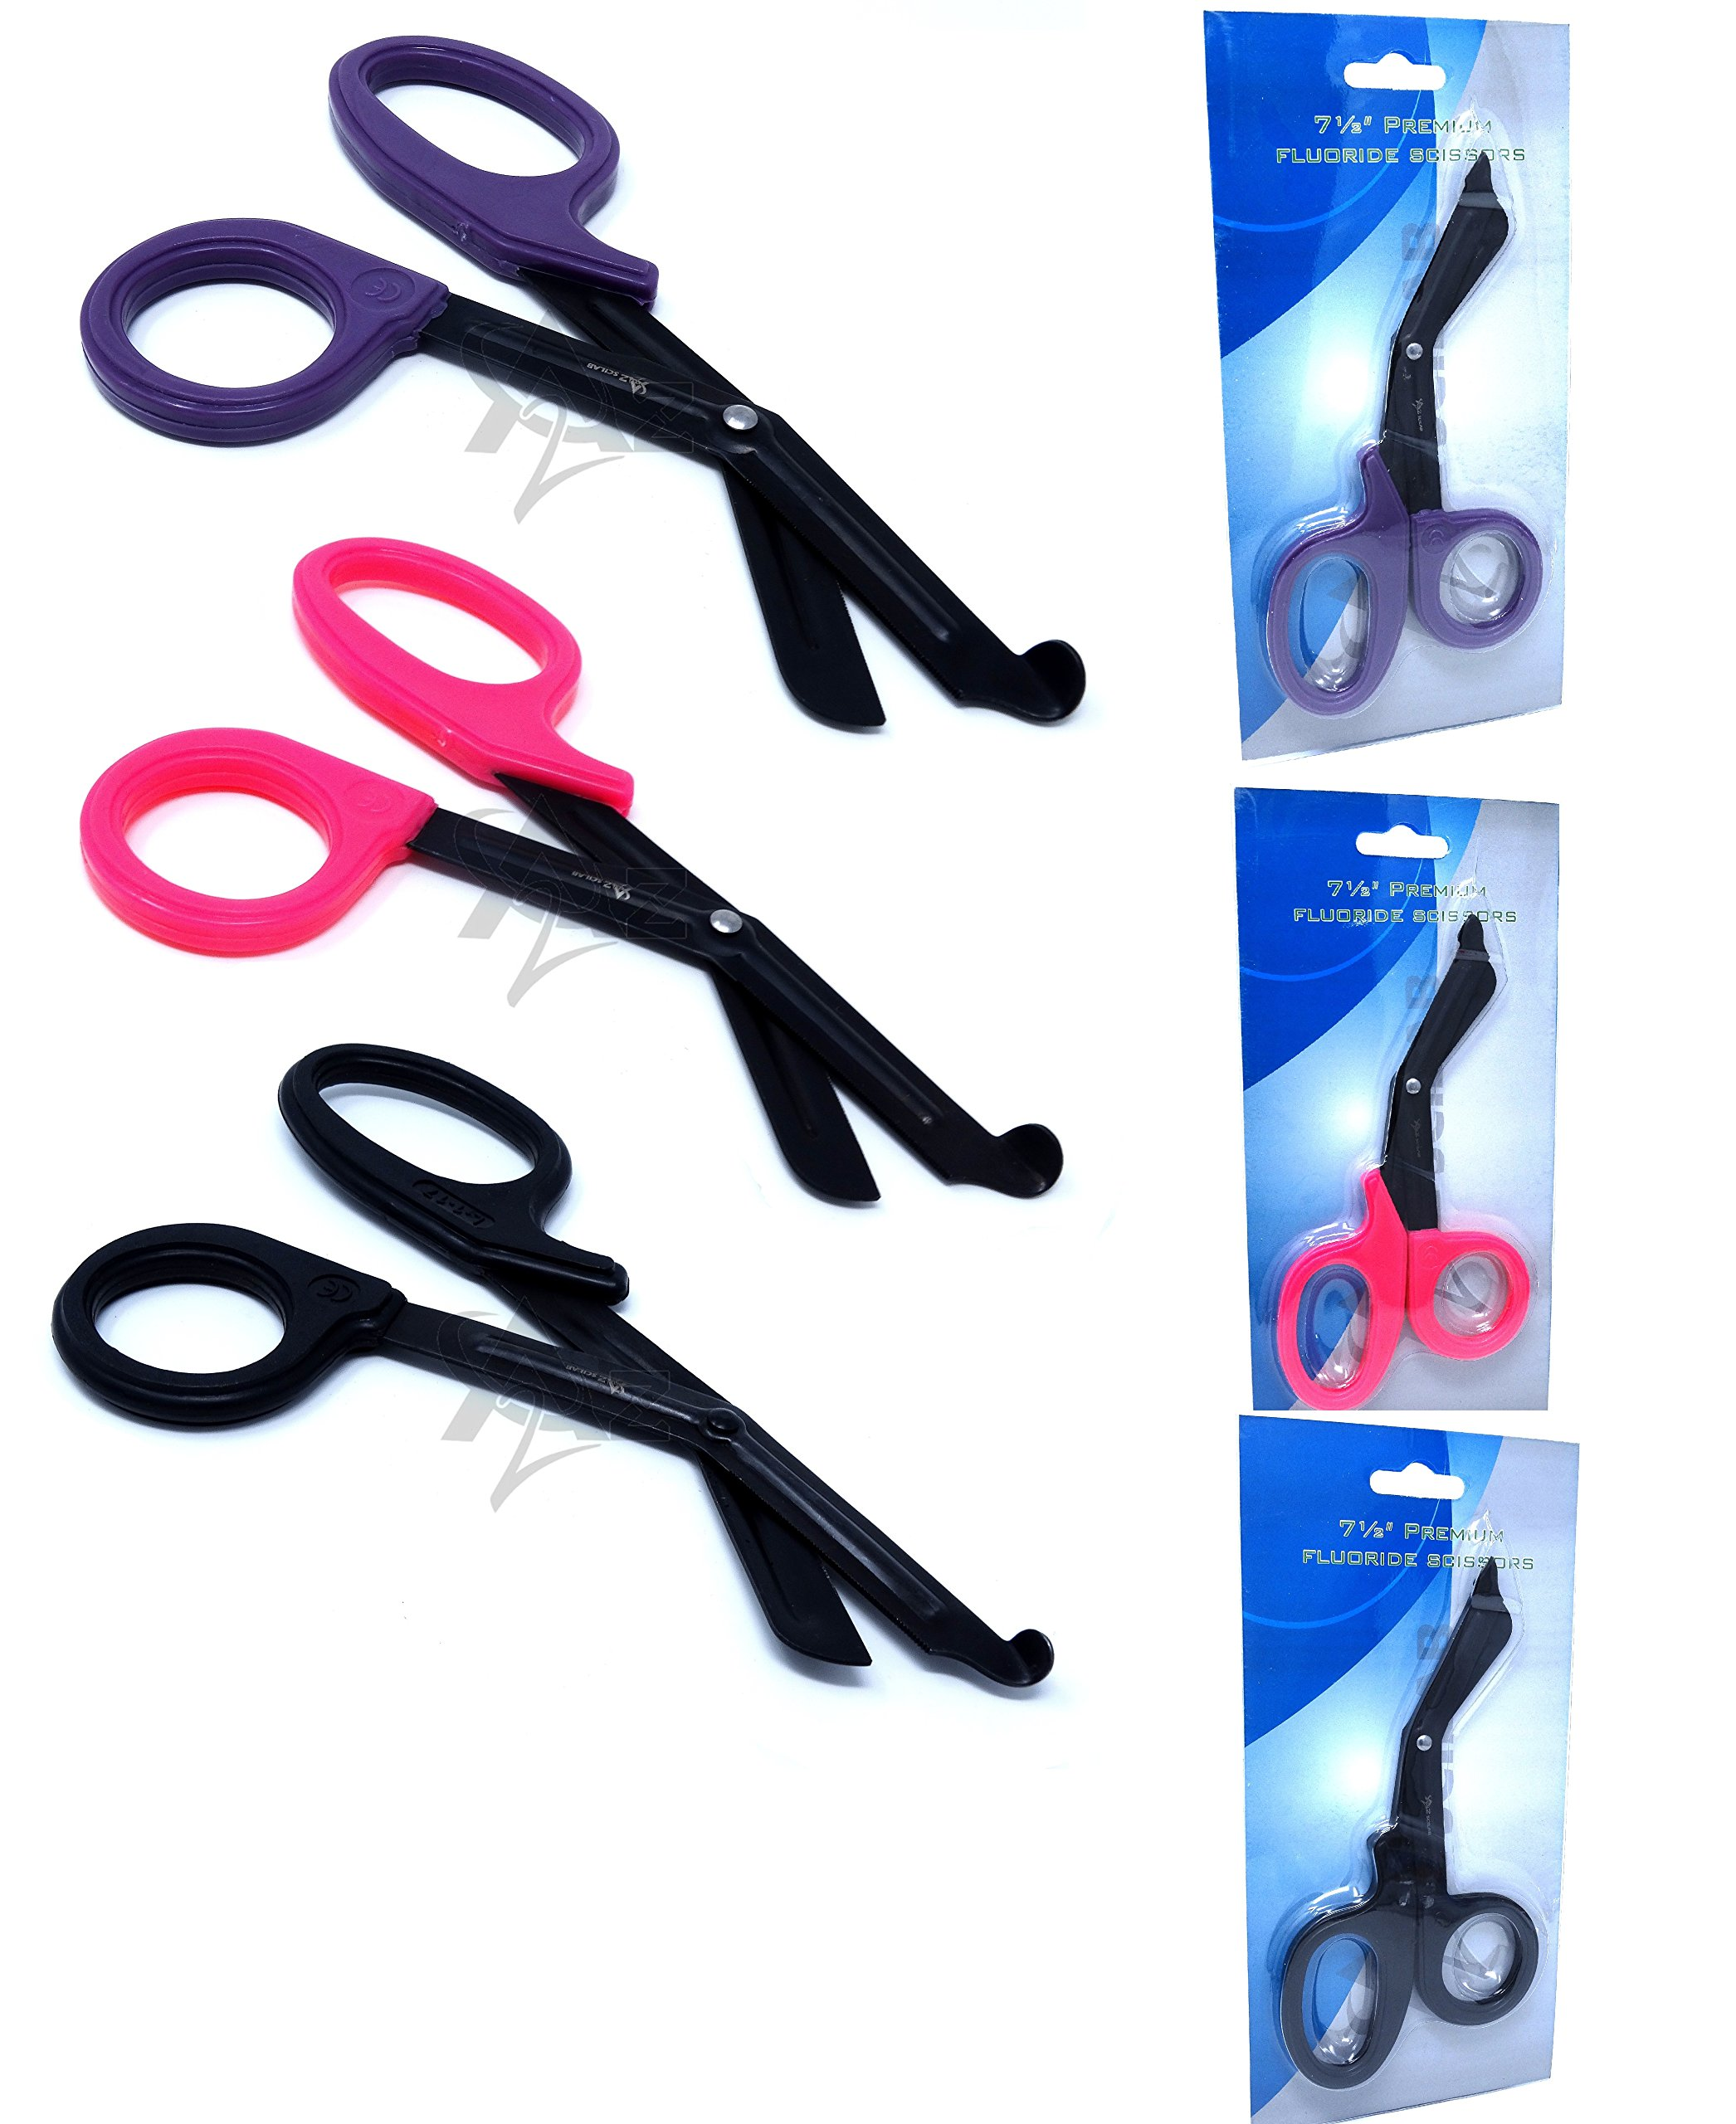 Set of 3 ( BLACK PINK PURPLE ) Fluoride Coated Trauma Paramedic EMT Shears Scissors 7.5'' (A2Z BRAND) by A2Z